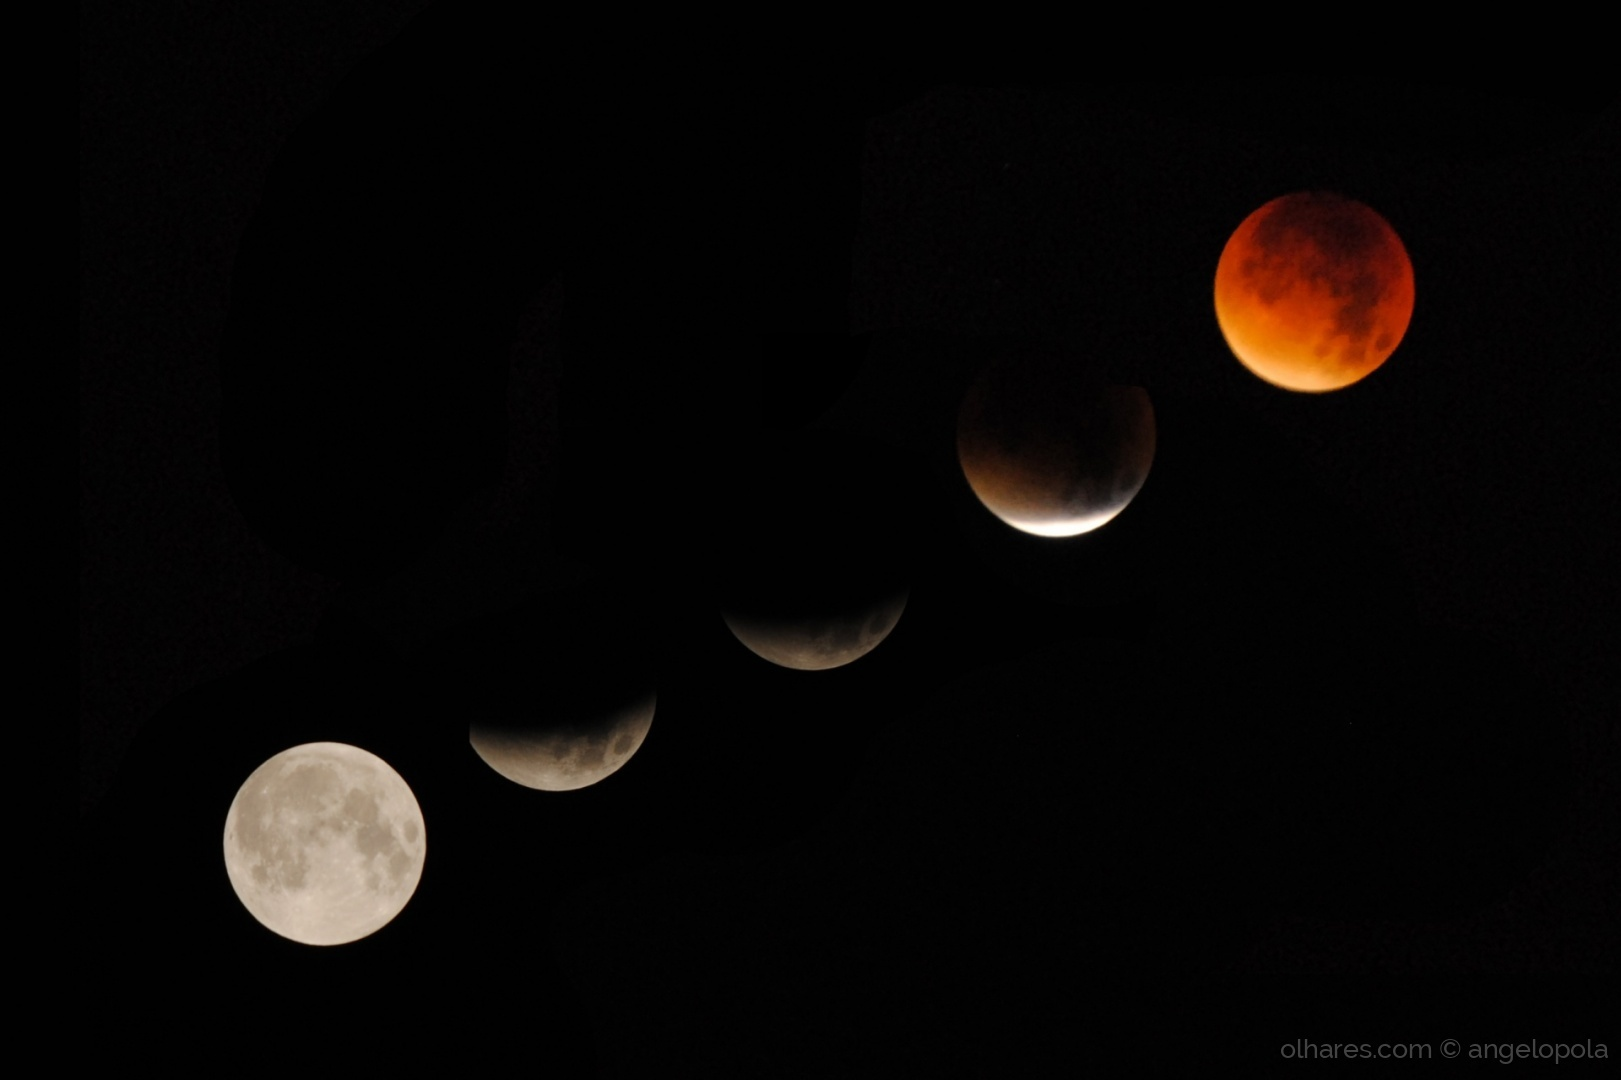 © angelopola - the bloodmoon